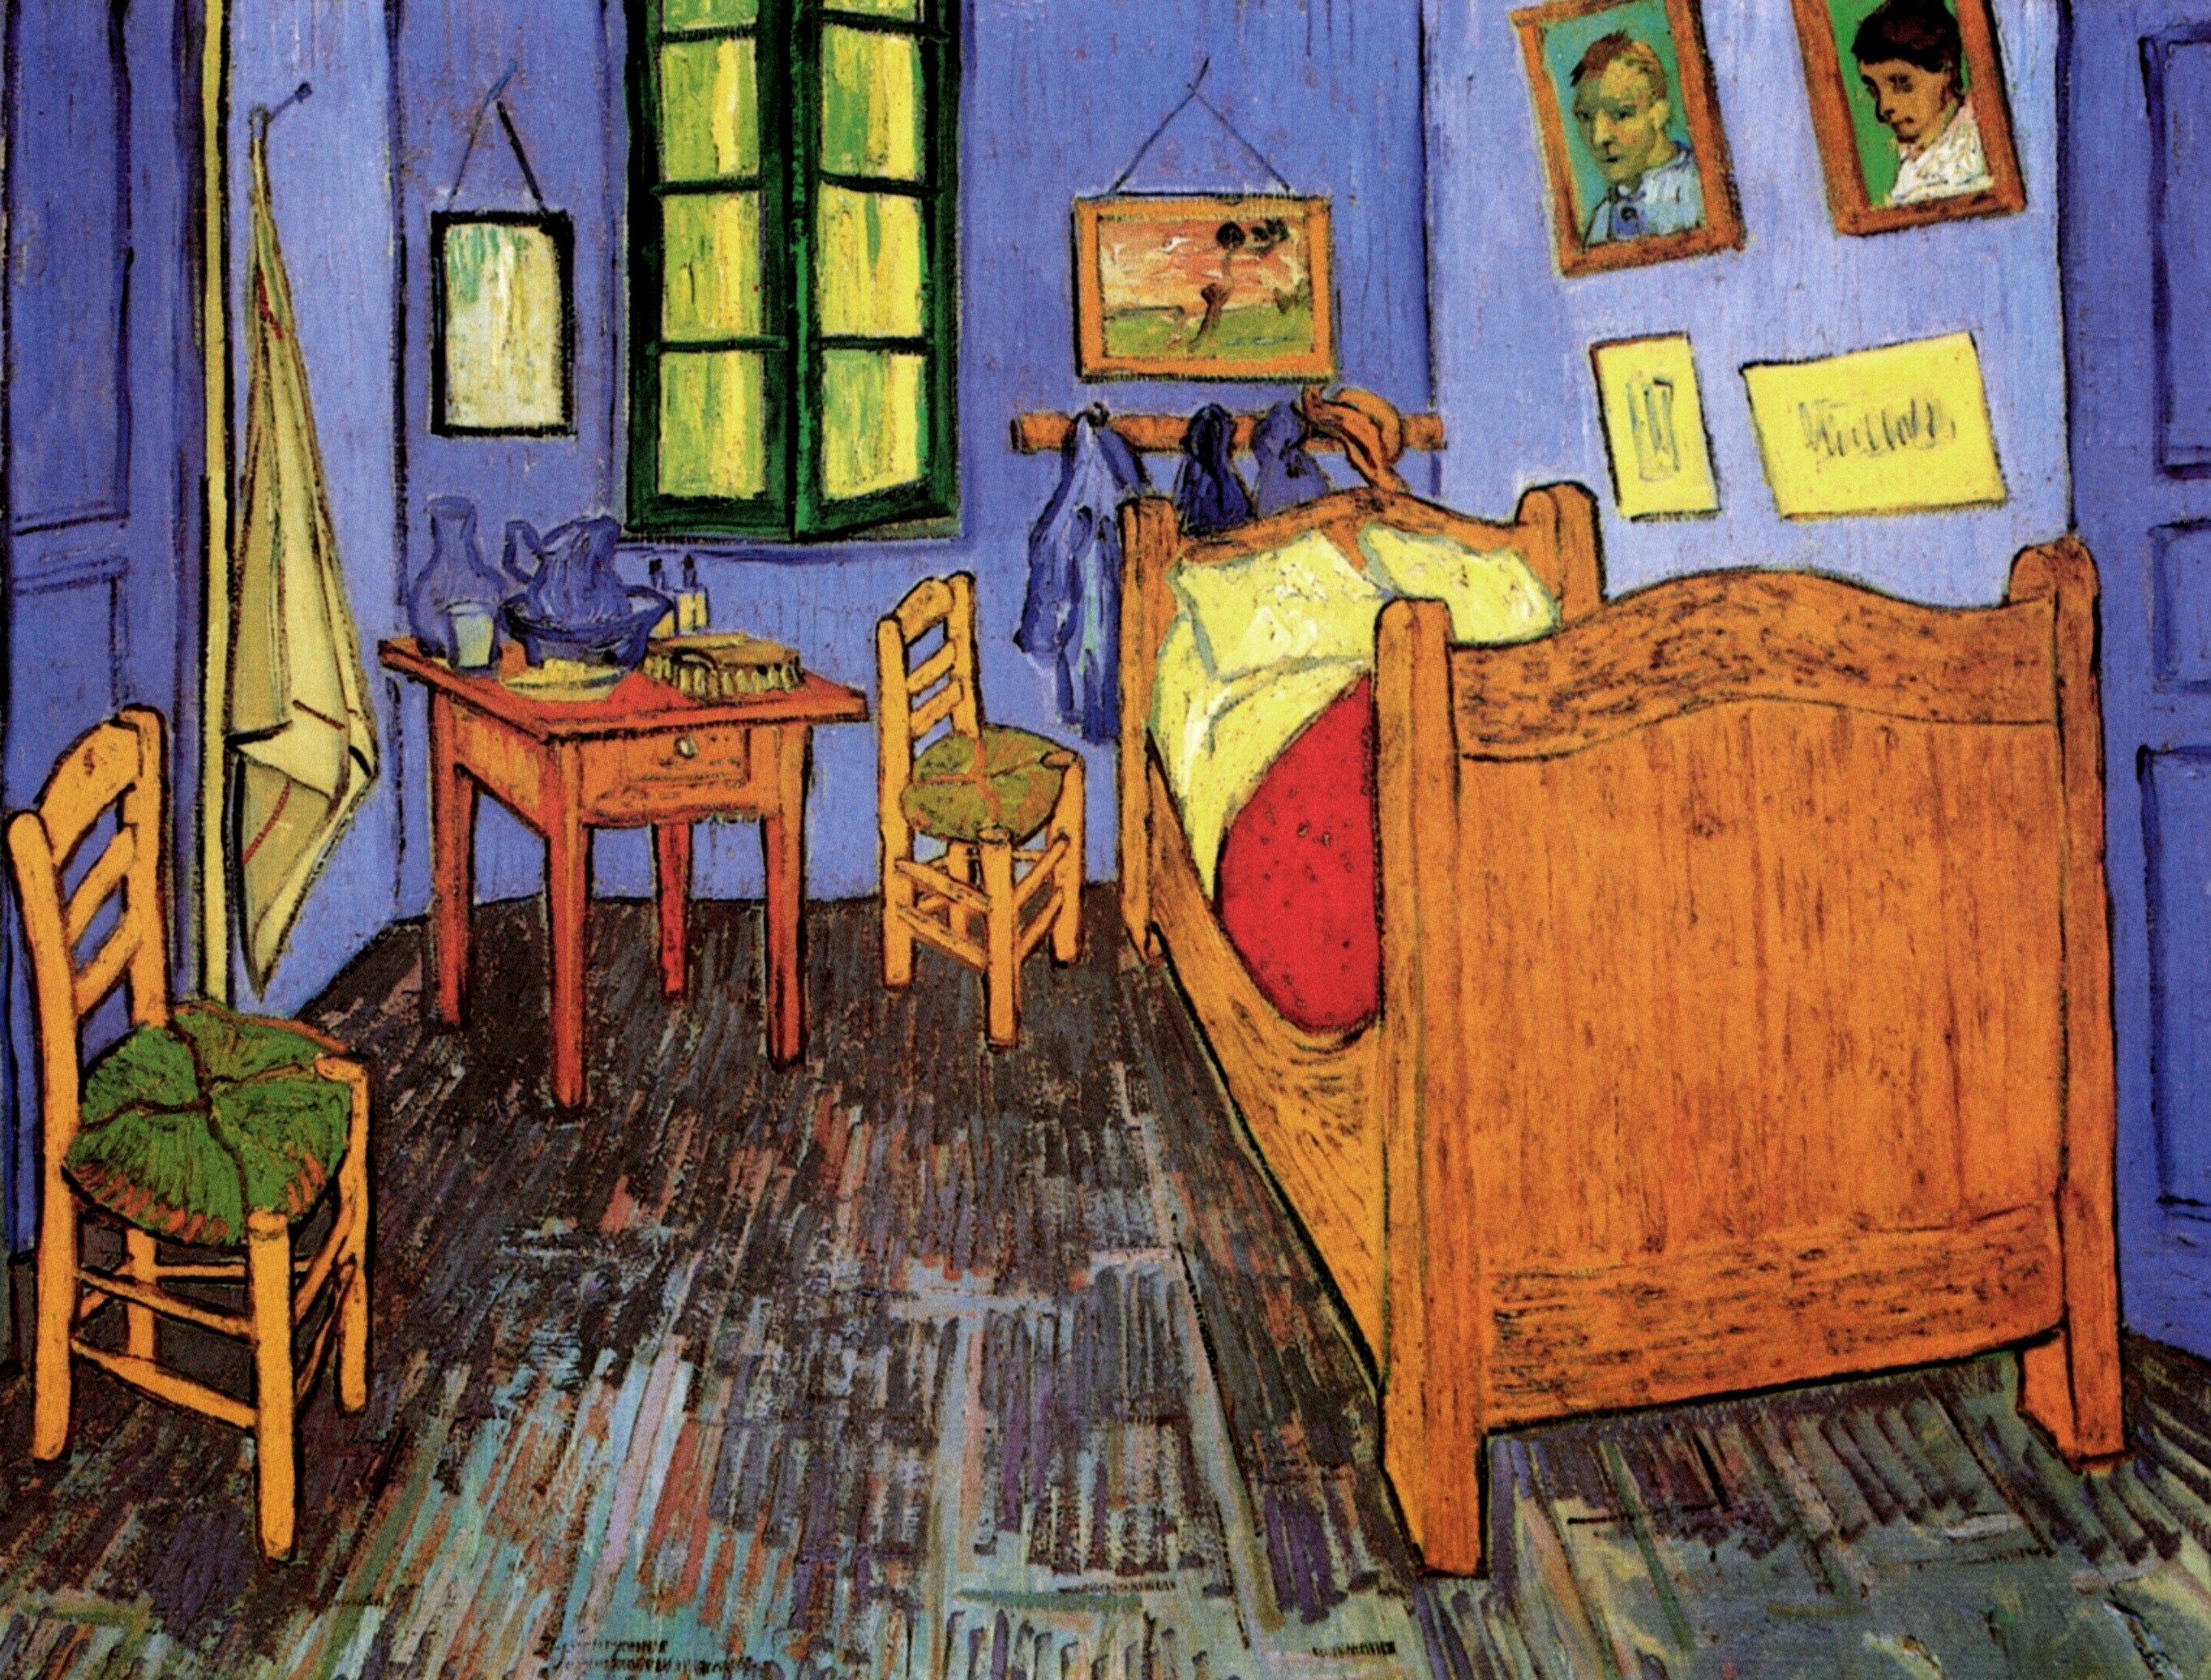 vincent van gogh vincent s bedroom in arles 1889 version from rh art vangogh com van gogh bedroom in arles van gogh bedroom in arles analysis